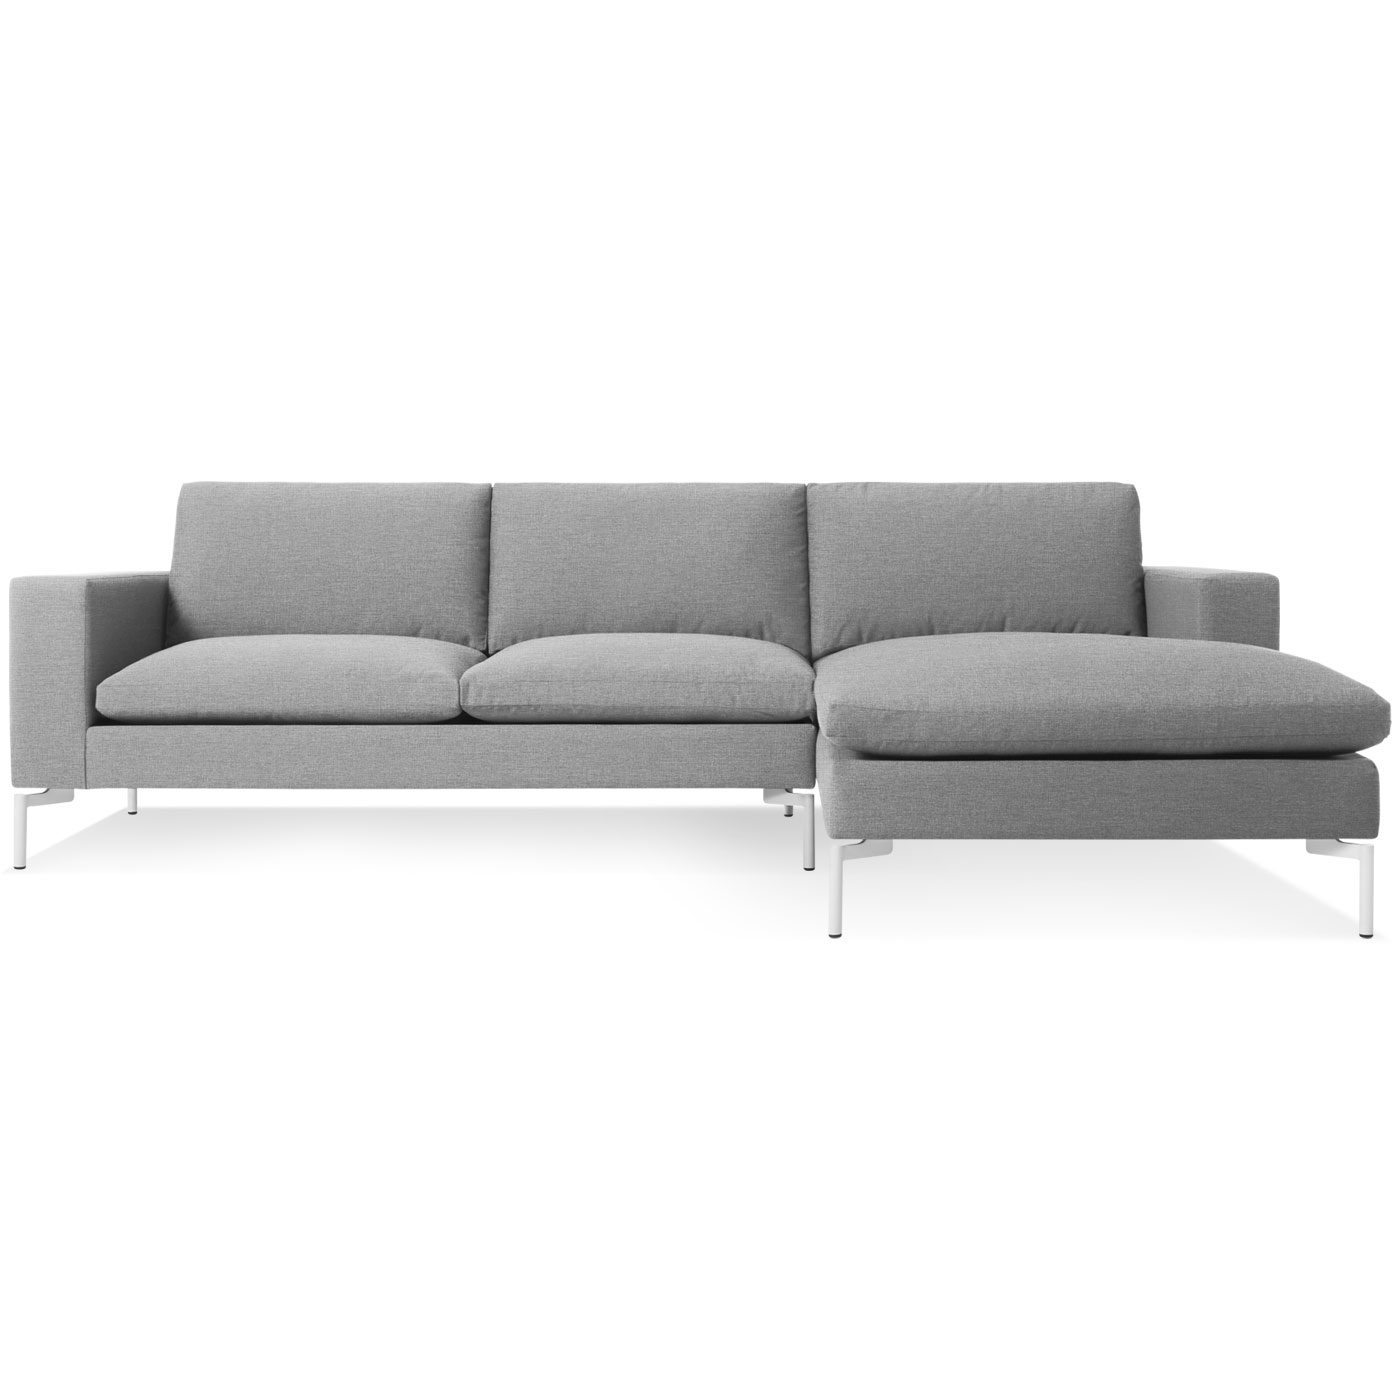 Newest Grey Chaise Sofas With Regard To New Standard Modern Chaise Sofa – Left Chaise (View 12 of 15)